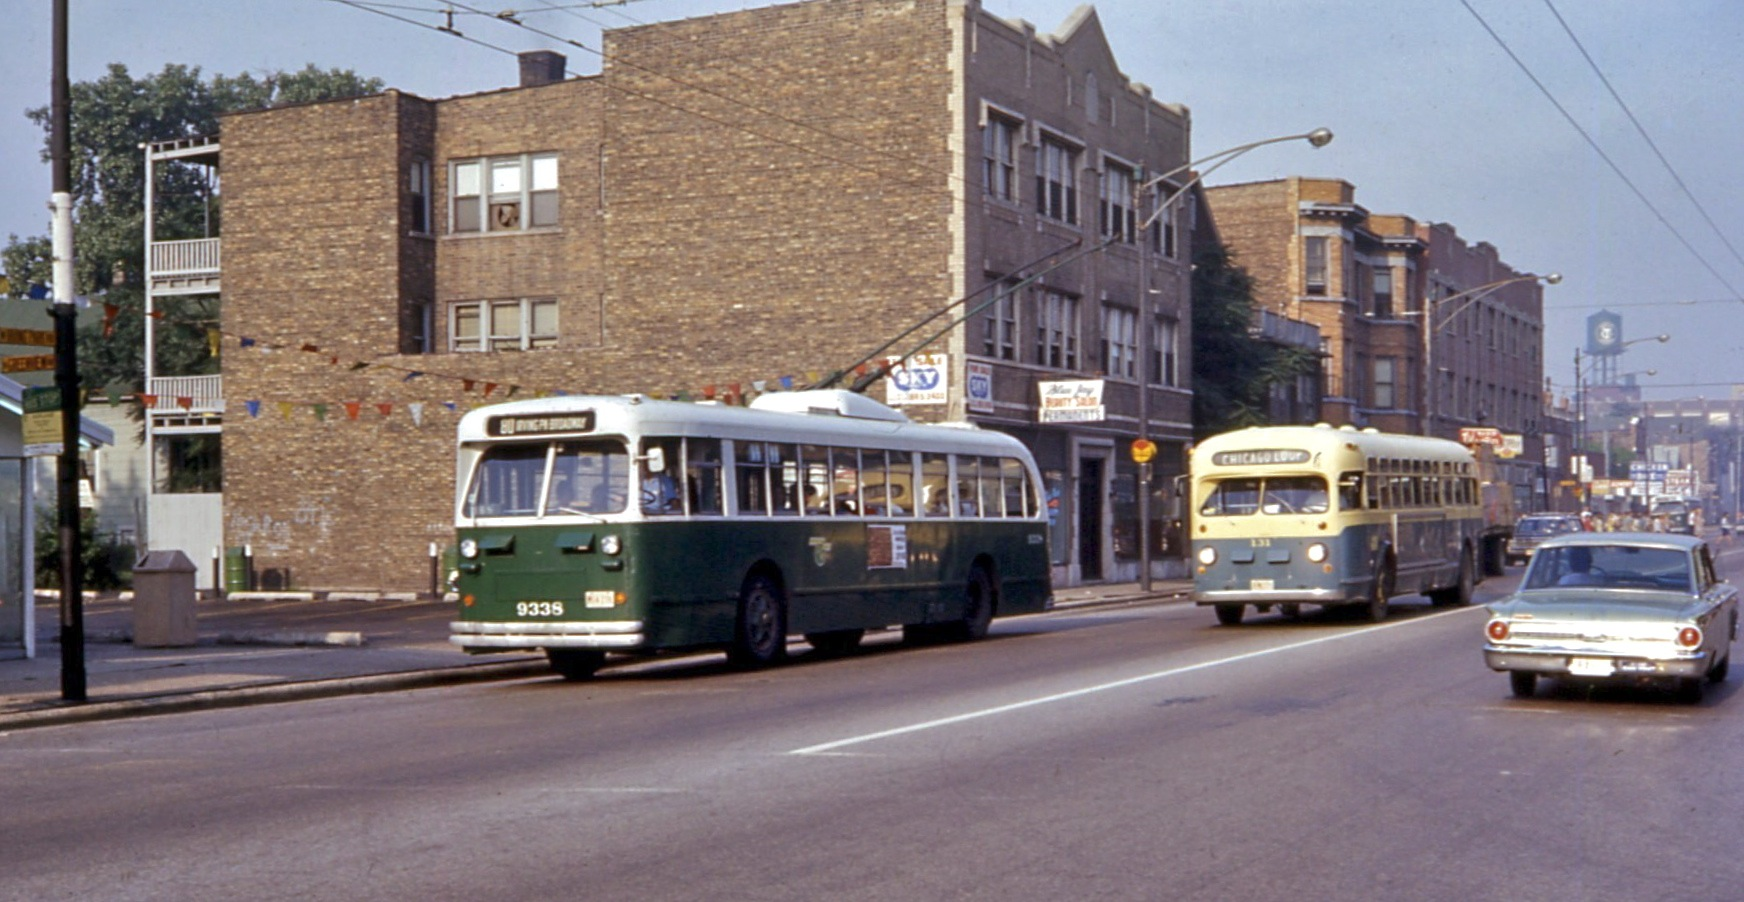 File Cta Pullman Trolley Bus 9338 And Umc Bus 131 Irving